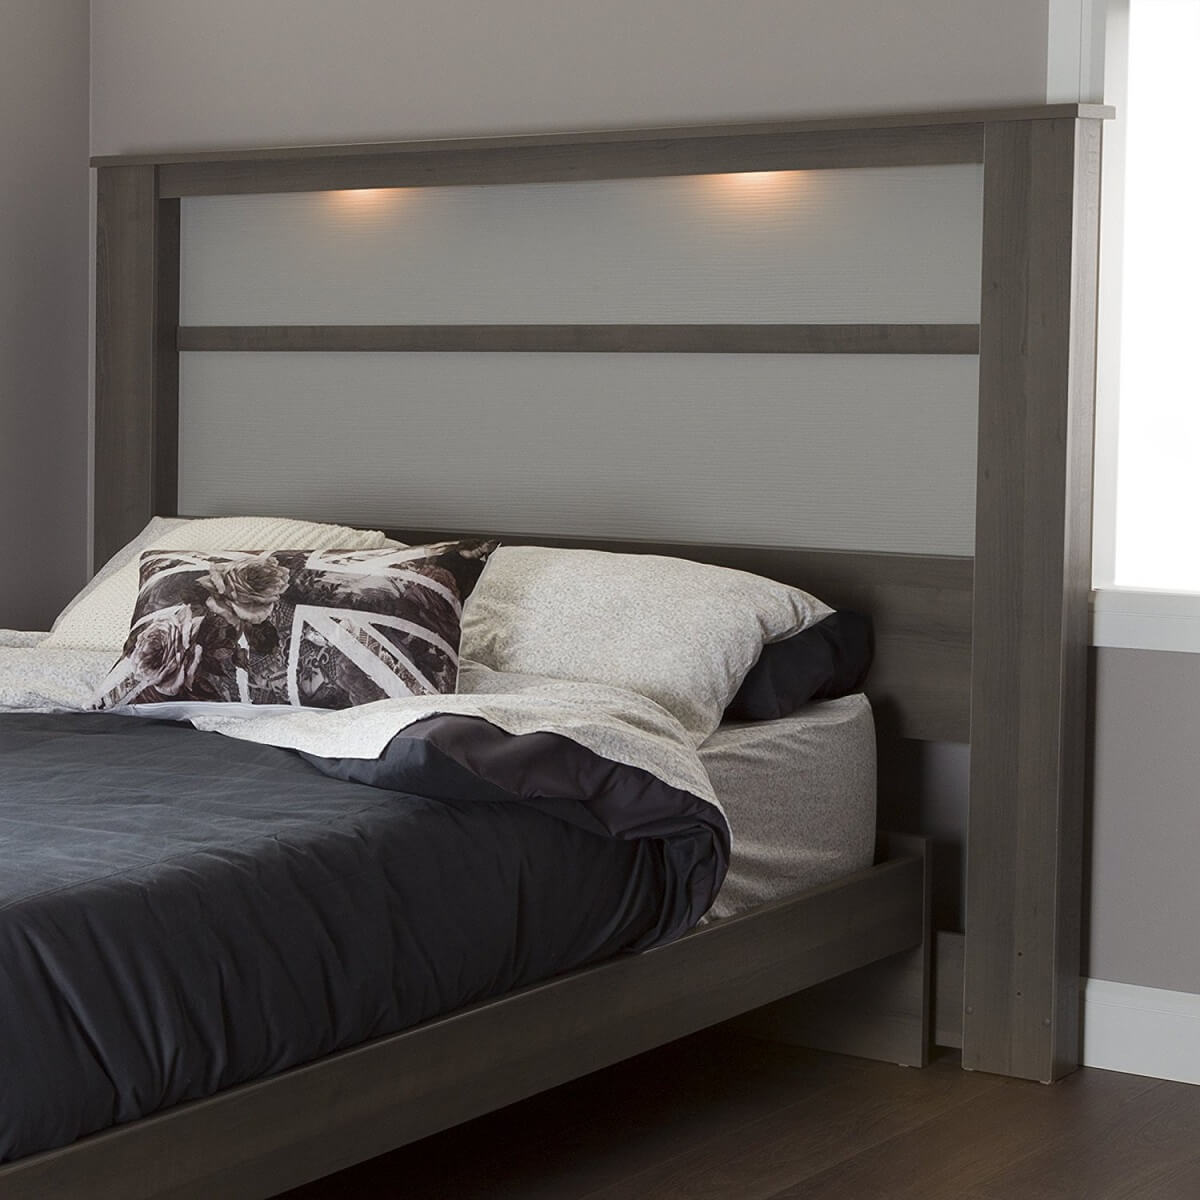 Modern Bed Frame with Built in Lights